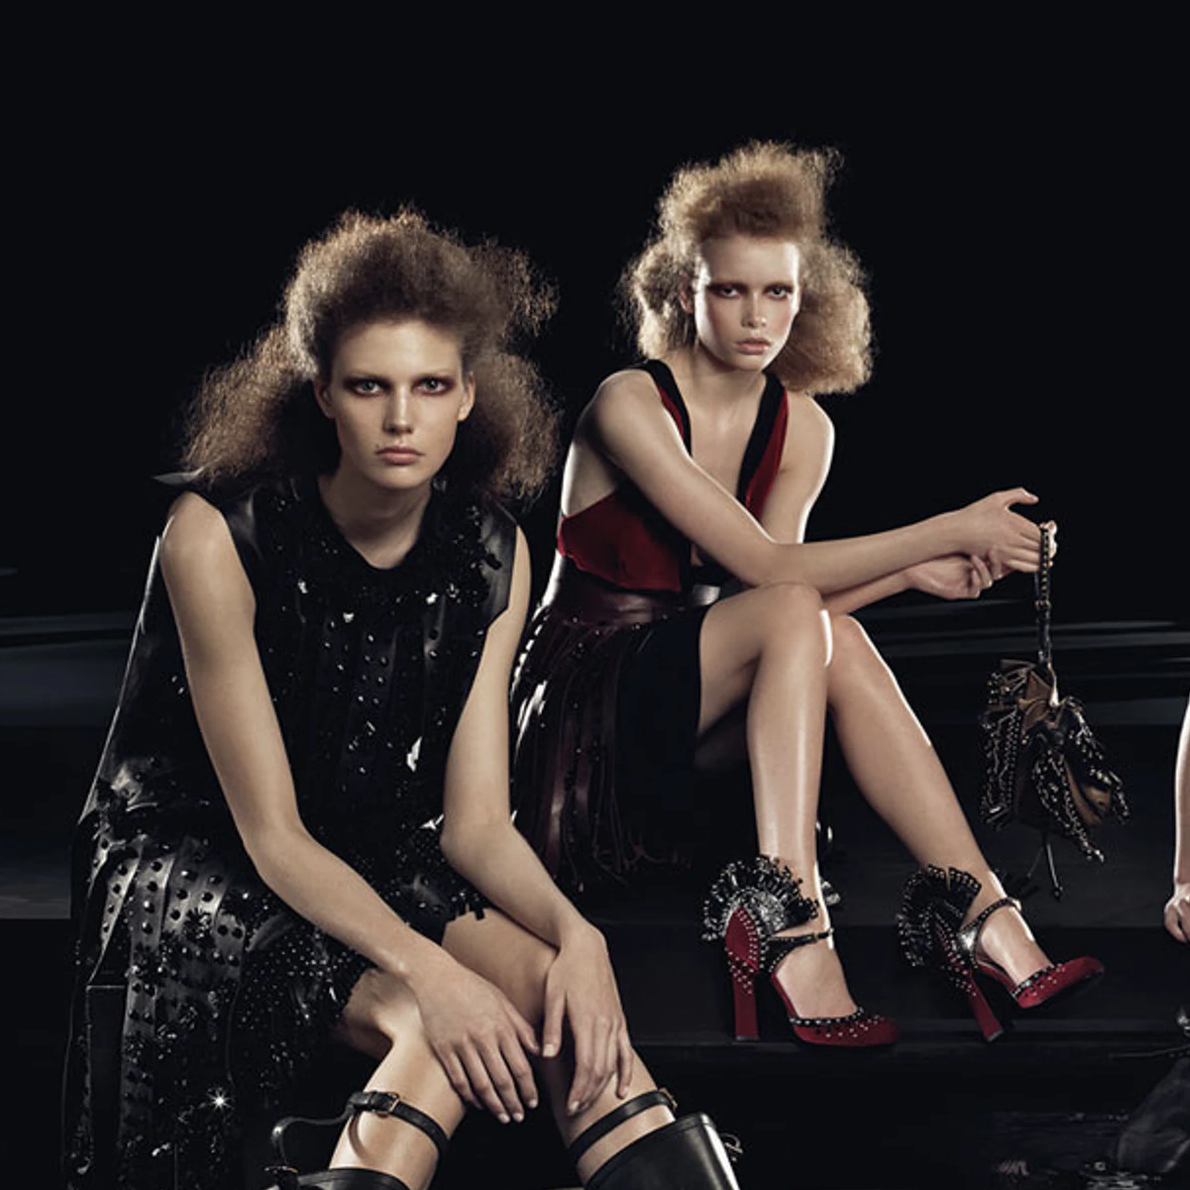 the zoe report - This Prada Fall Campaign Changed The Way I Saw My Hair — & Myself